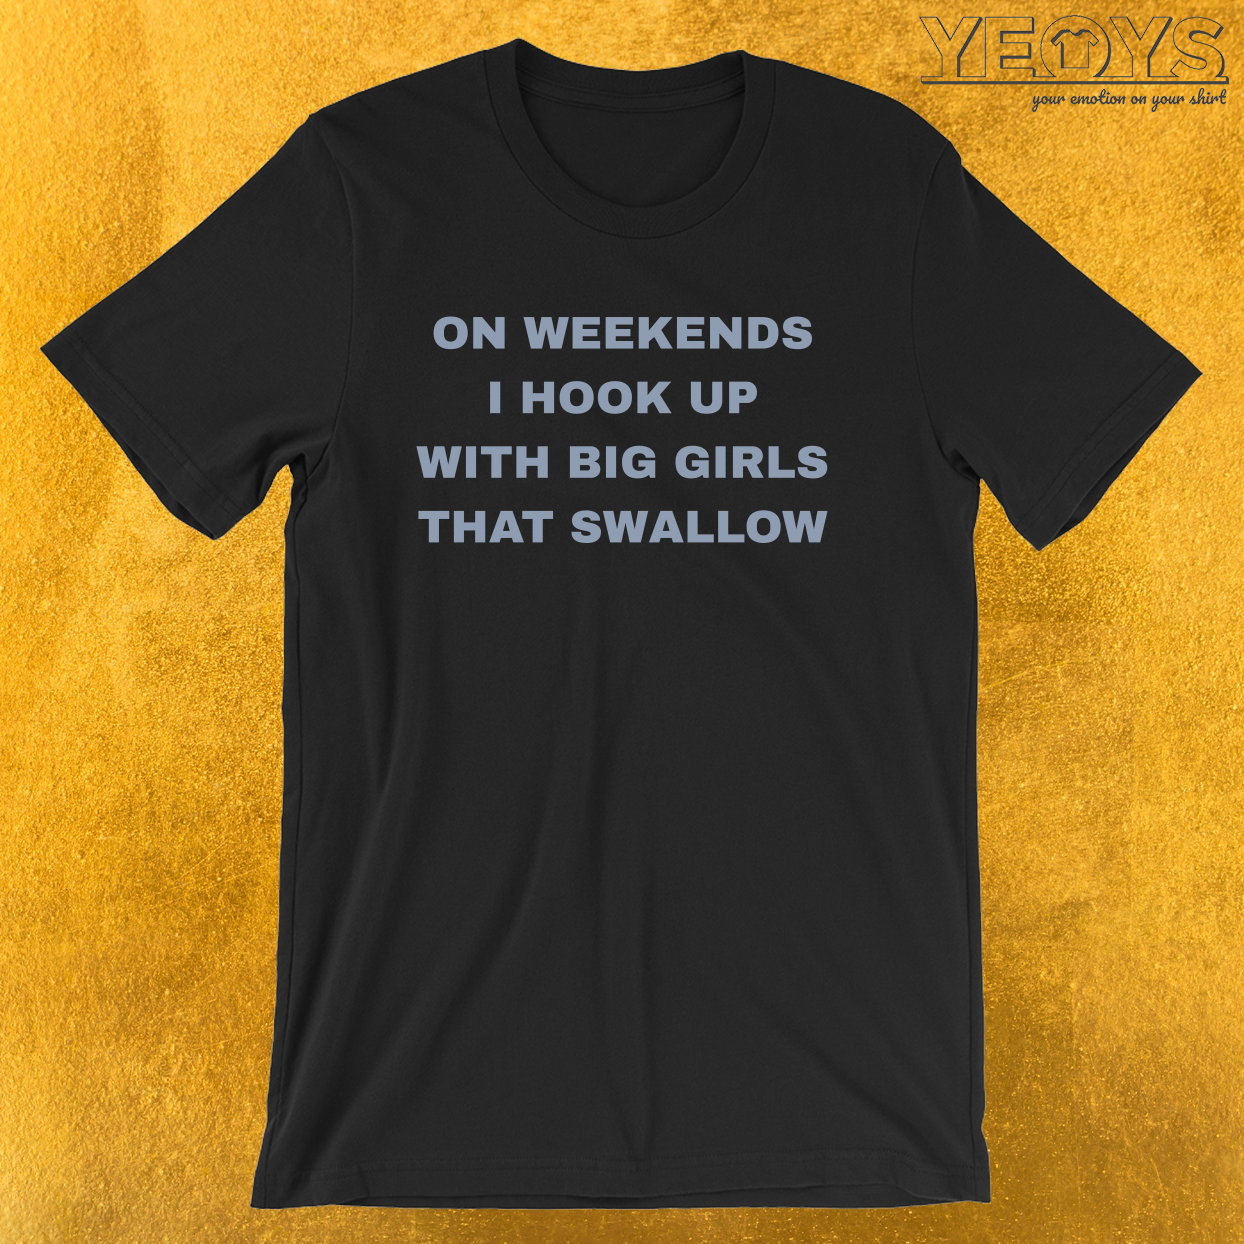 I Hook Up With Big Girls That Swallow – Funny Fishing Trip Tee